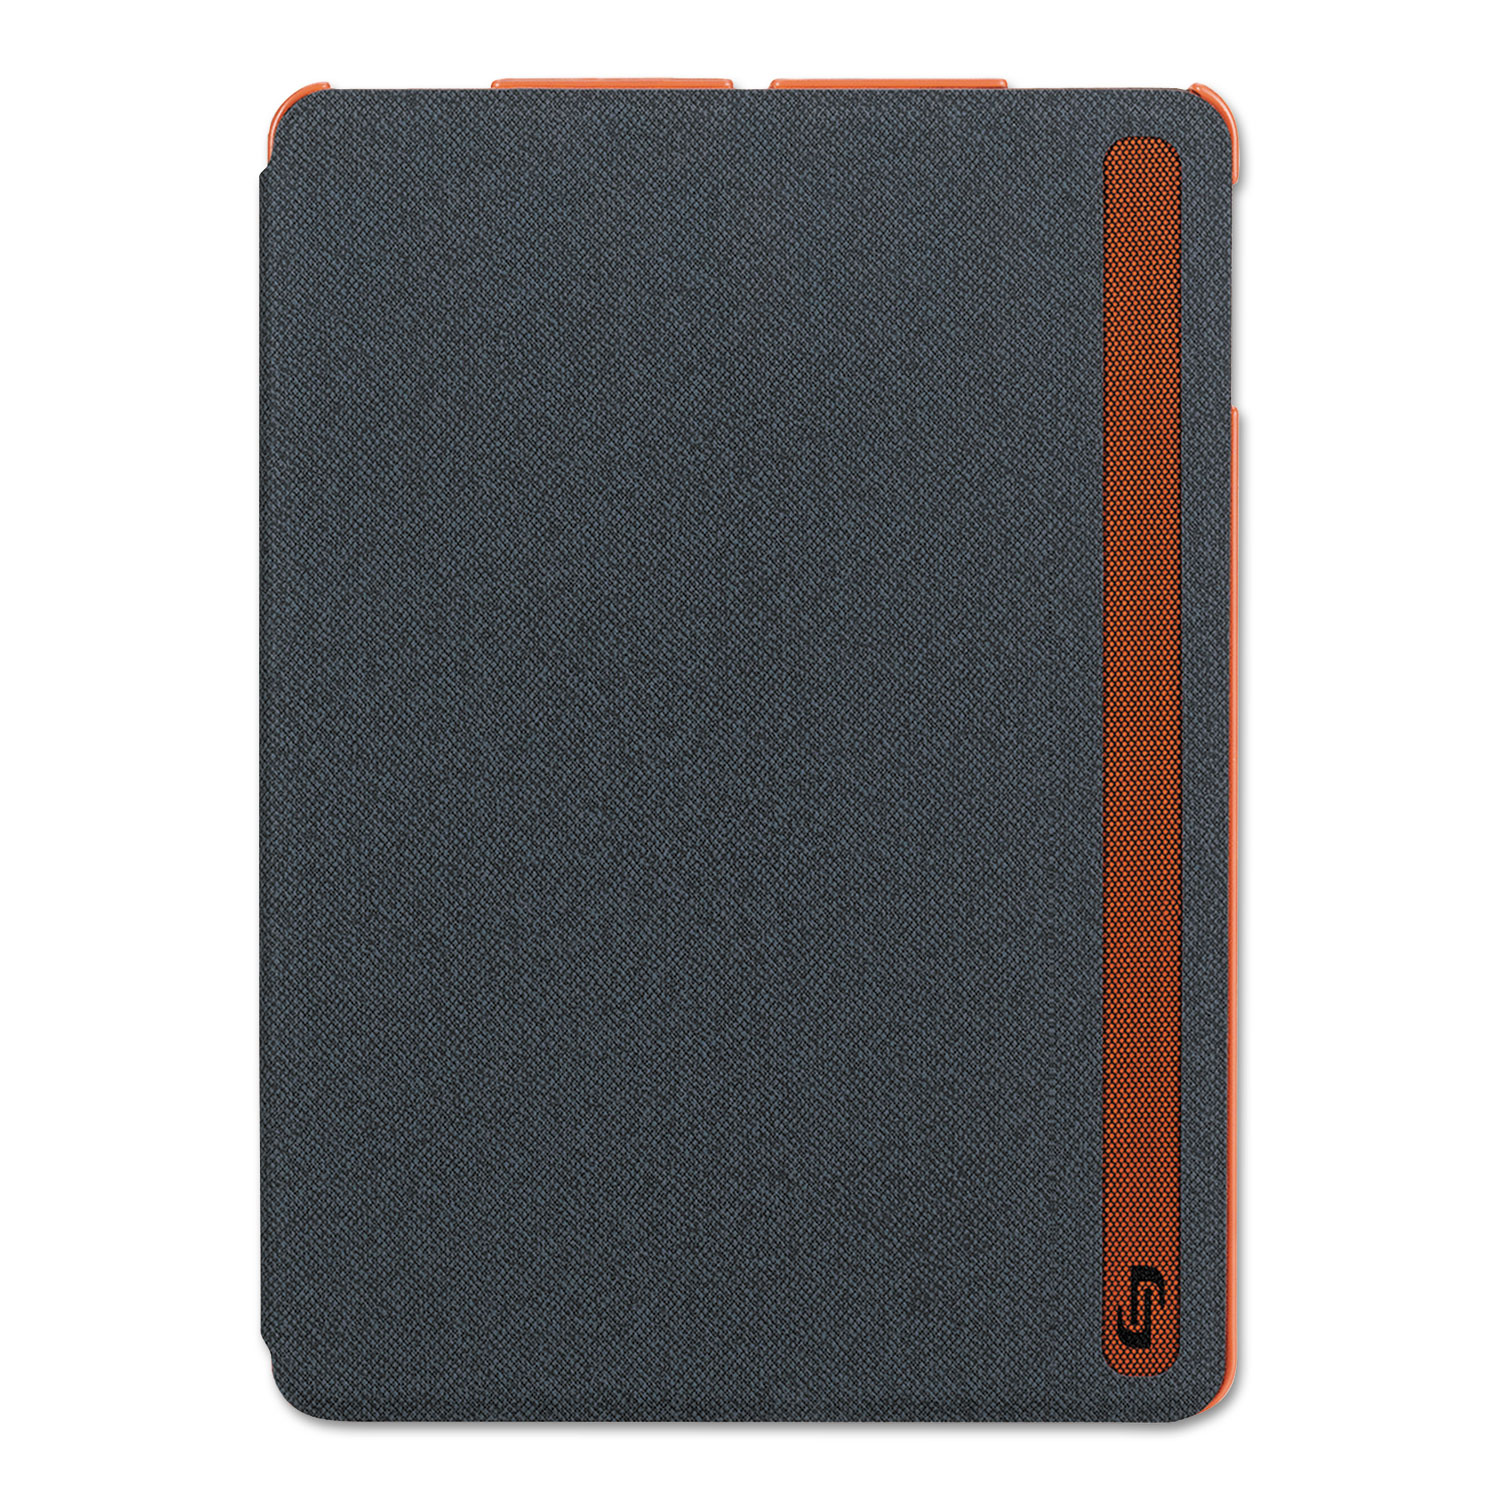 Austin iPad Air Case, Polyester, Gray/Orange